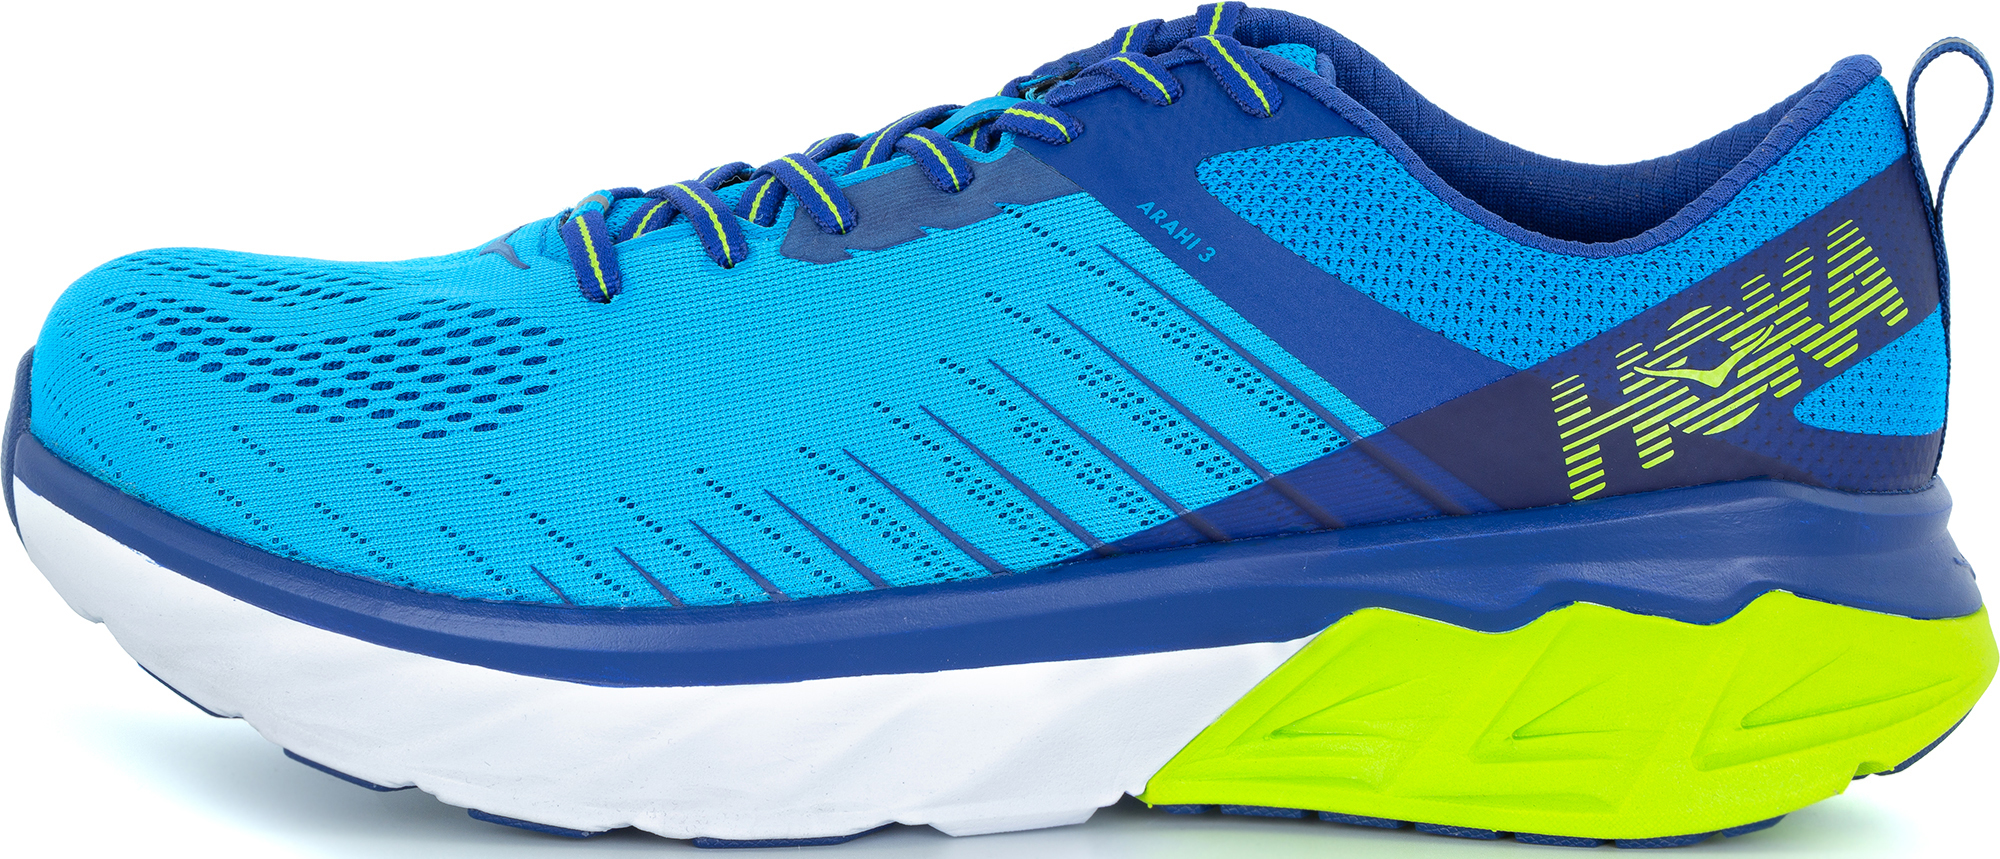 HOKA ONE ONE Кроссовки мужские HOKA ONE ONE Arahi 3, размер 40 hoka one one women s w conquest running shoe